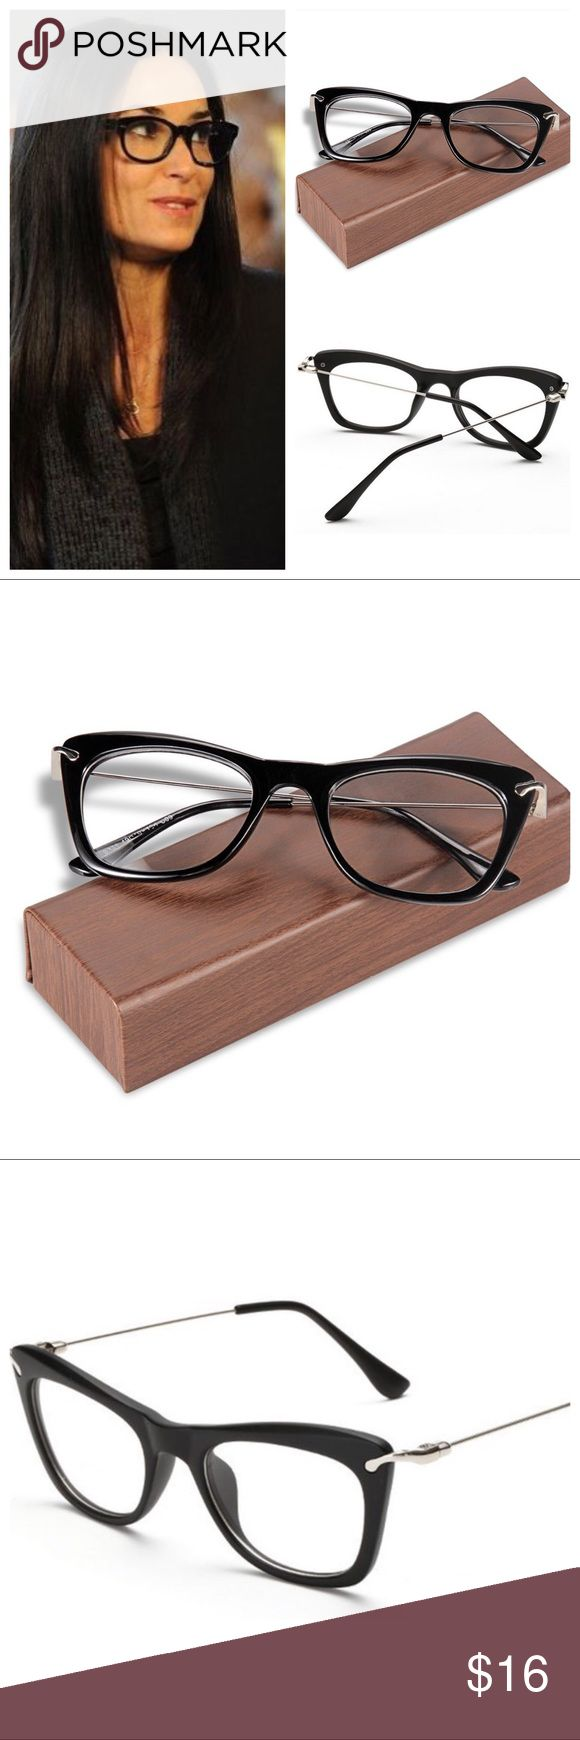 BLACK CAT EYE EYEGLASSES Womens Vintage Cateye Metal Eyewear with Clear Lens Eyeglasses. Black. Composite frame. Lens width: 49. Lens height: 35. You could change into your prescription lenses.Case & cloth Included. Enjoy! Accessories Glasses